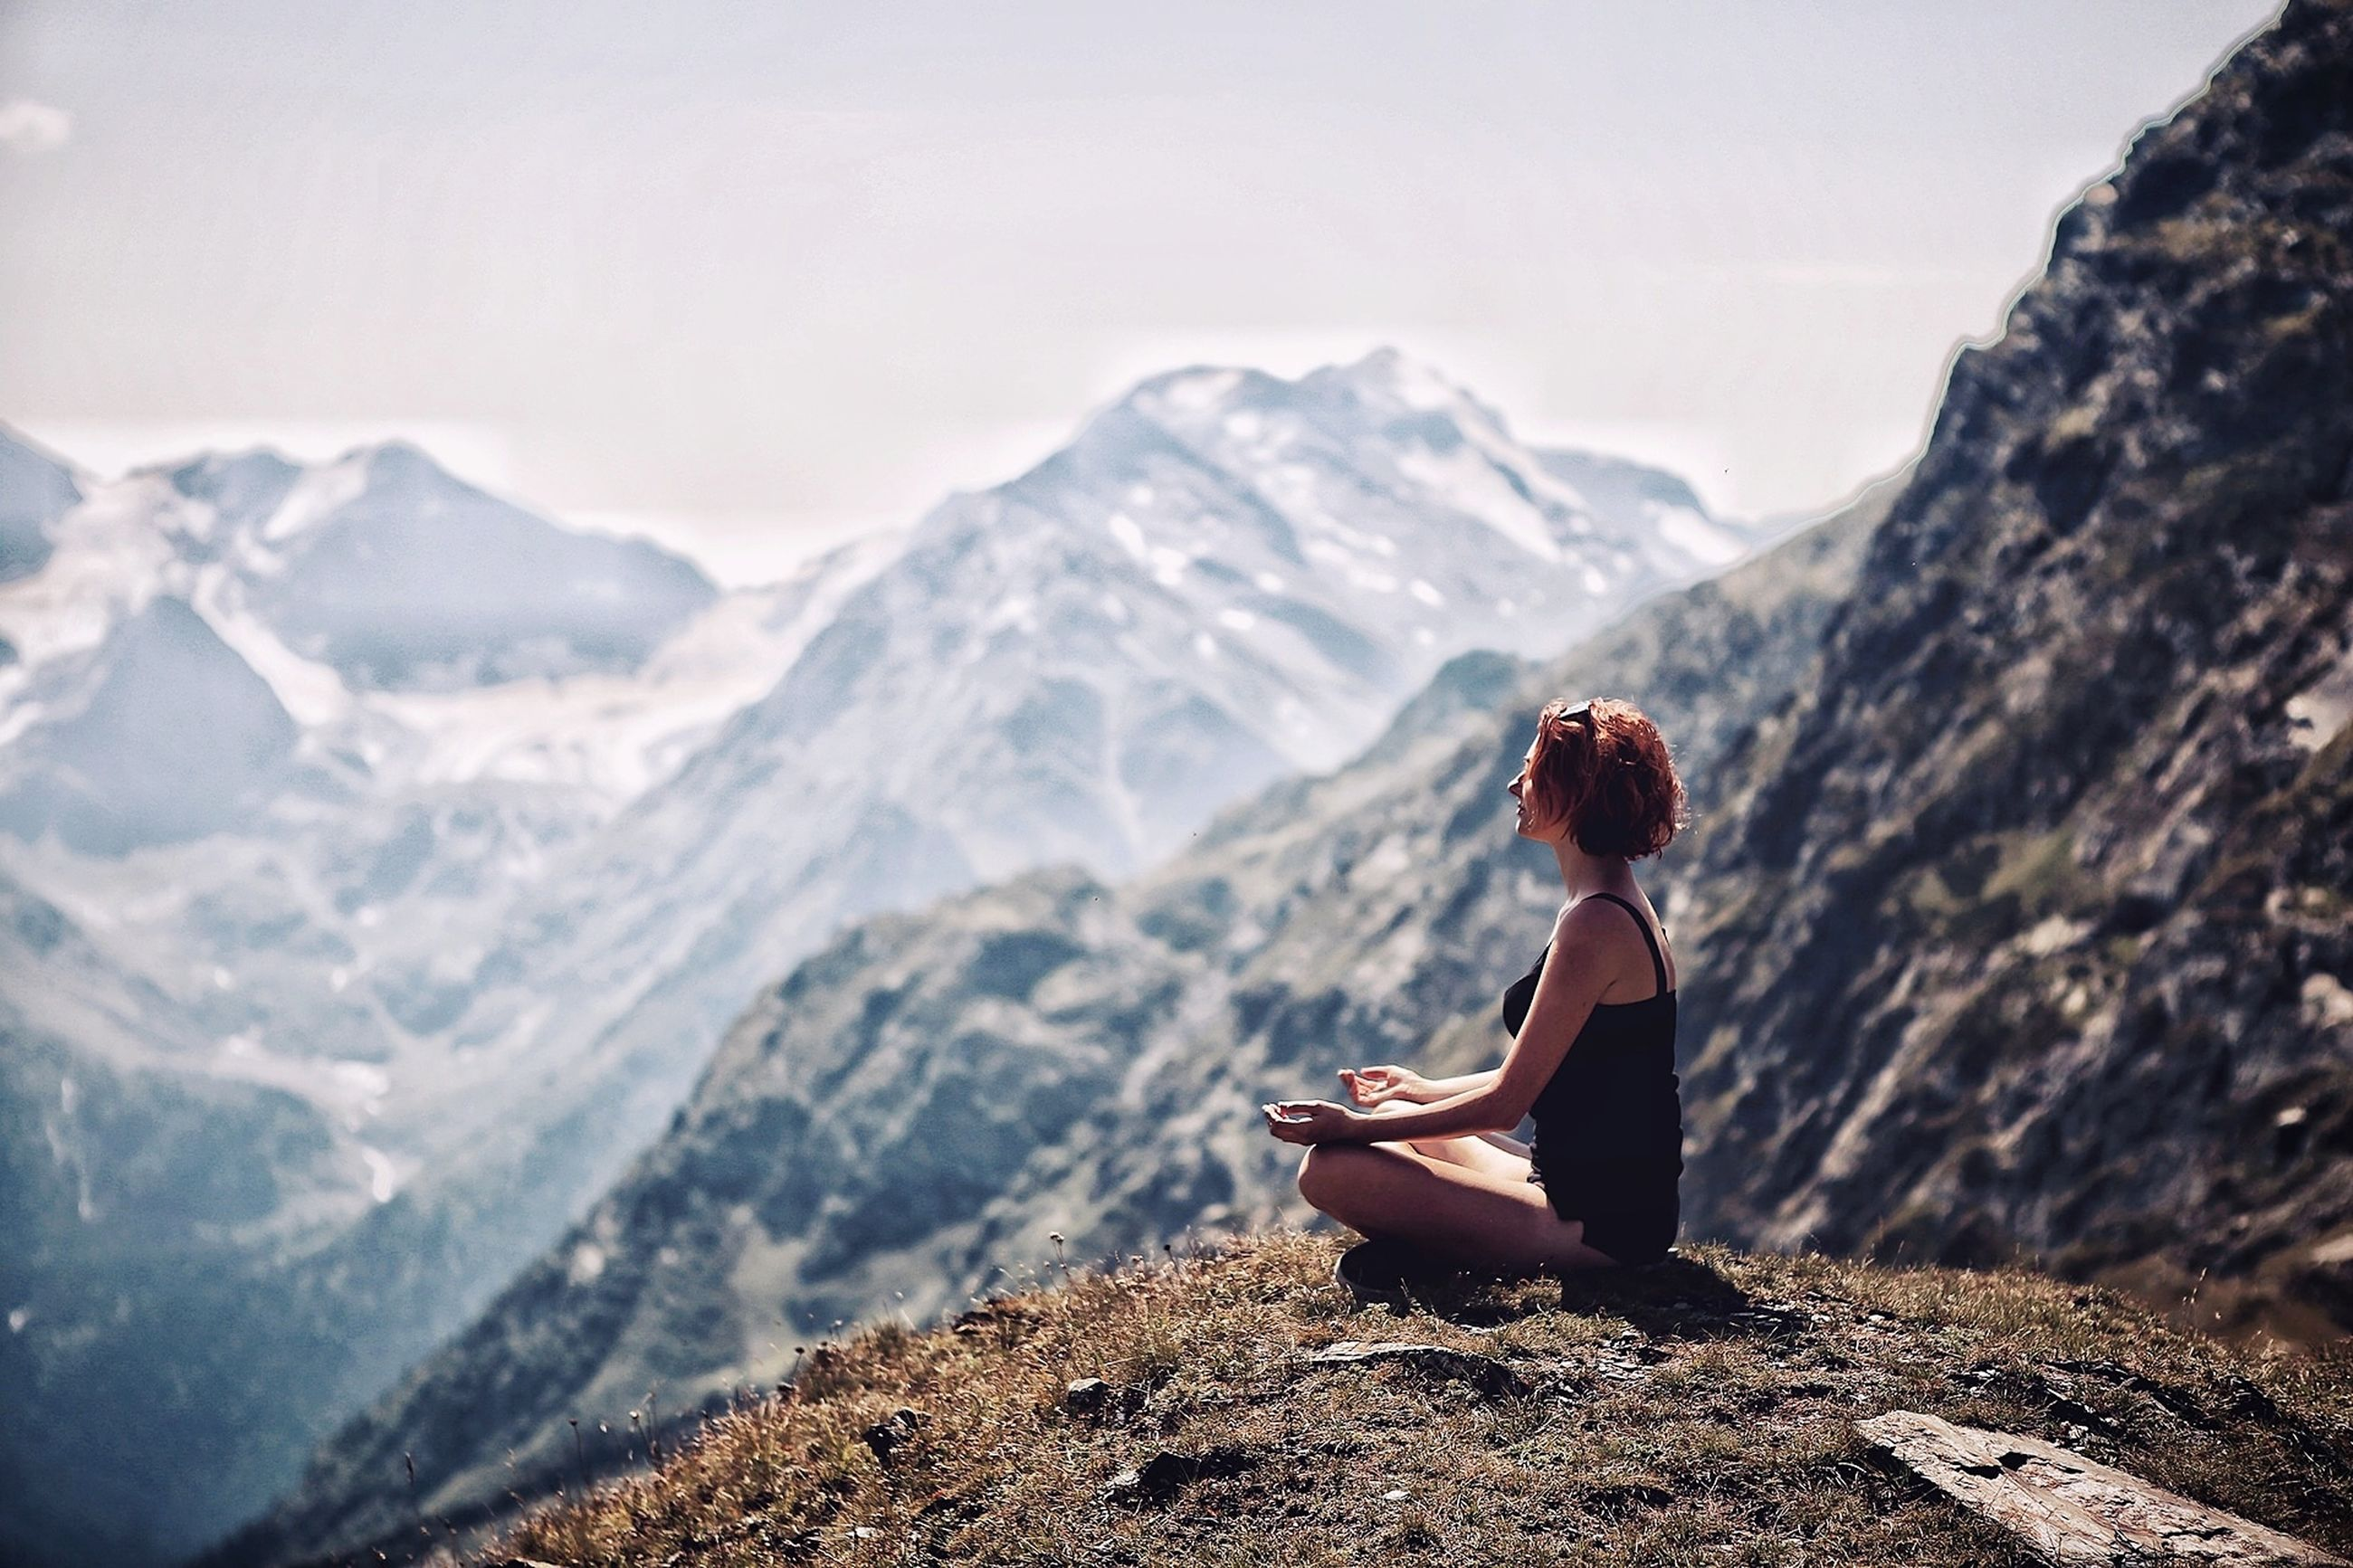 mountain, one person, leisure activity, real people, scenics - nature, beauty in nature, lifestyles, sitting, rock, rock - object, mountain range, solid, tranquility, nature, non-urban scene, young adult, tranquil scene, day, women, outdoors